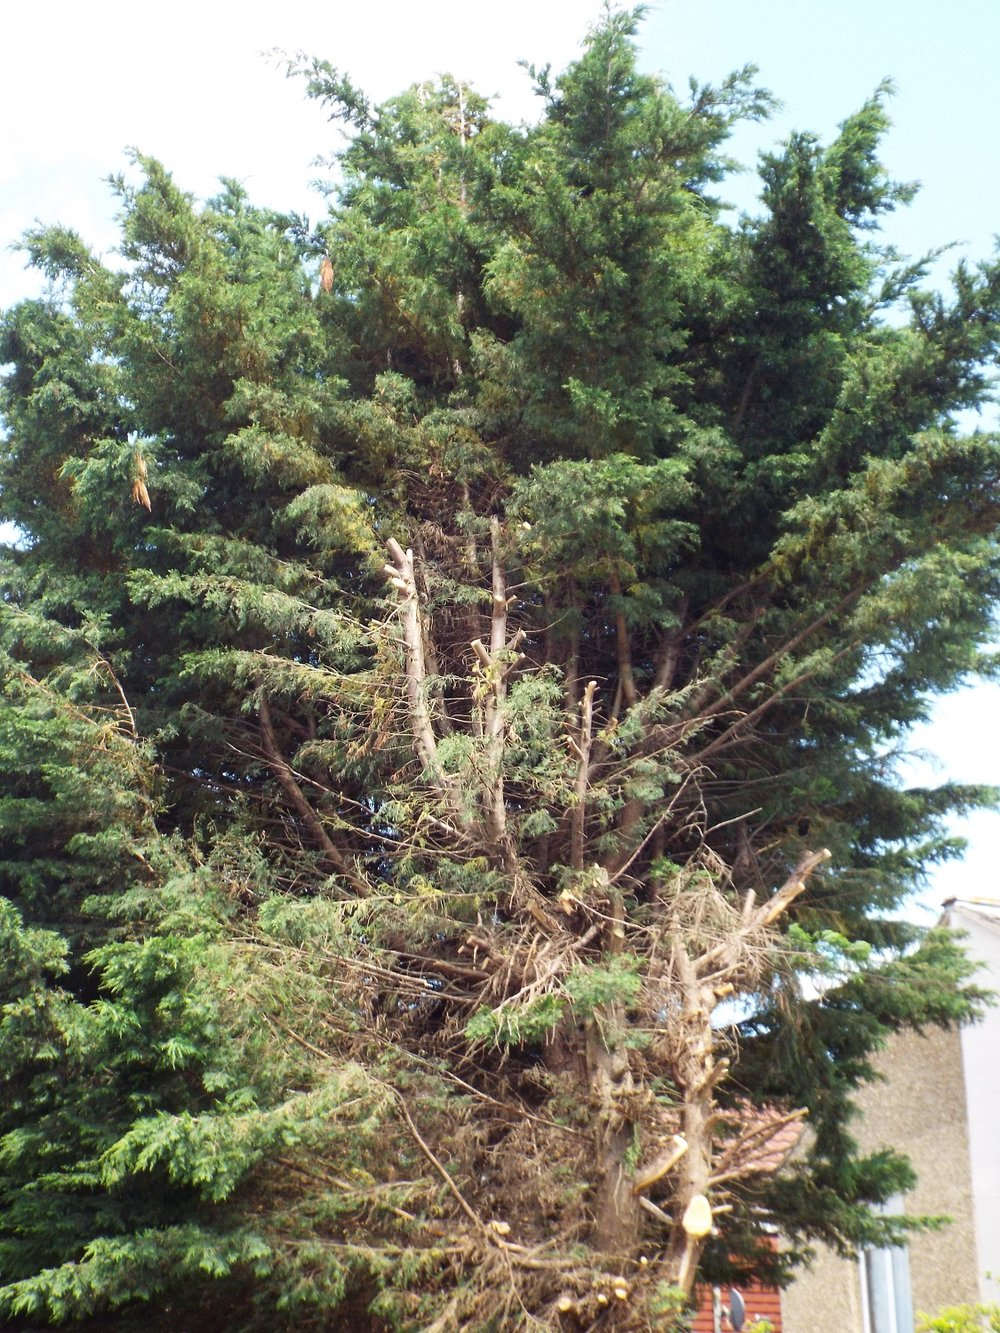 This large, established tree was 'cut back' in early June, after neighbour complaints